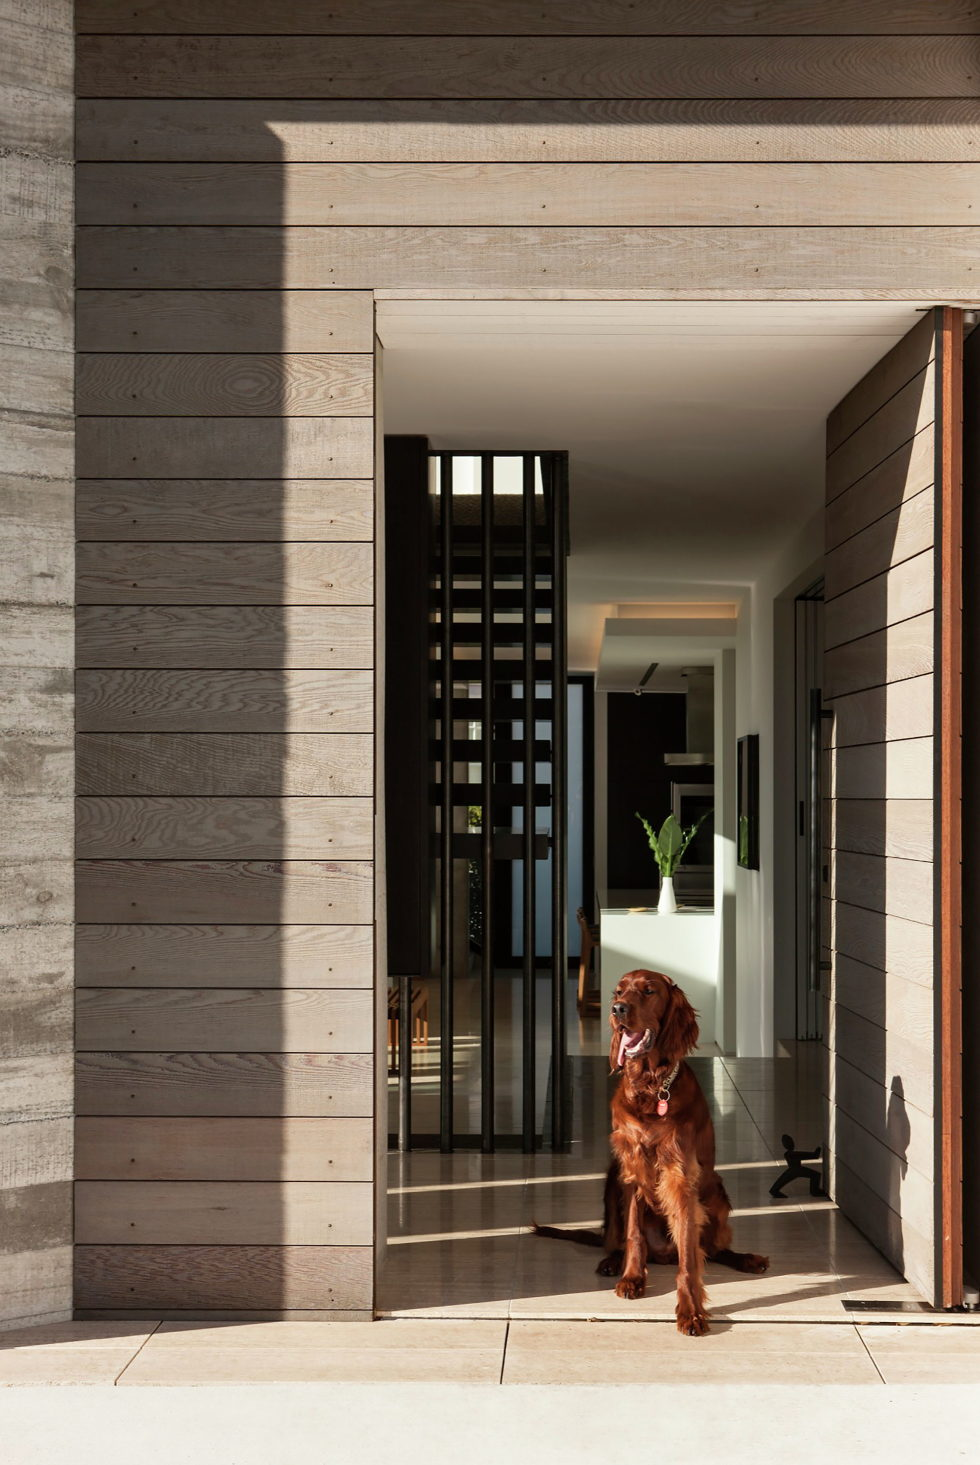 out-of-town-villa-in-new-zealand-upon-the-project-of-daniel-marshall-architects-studio-2